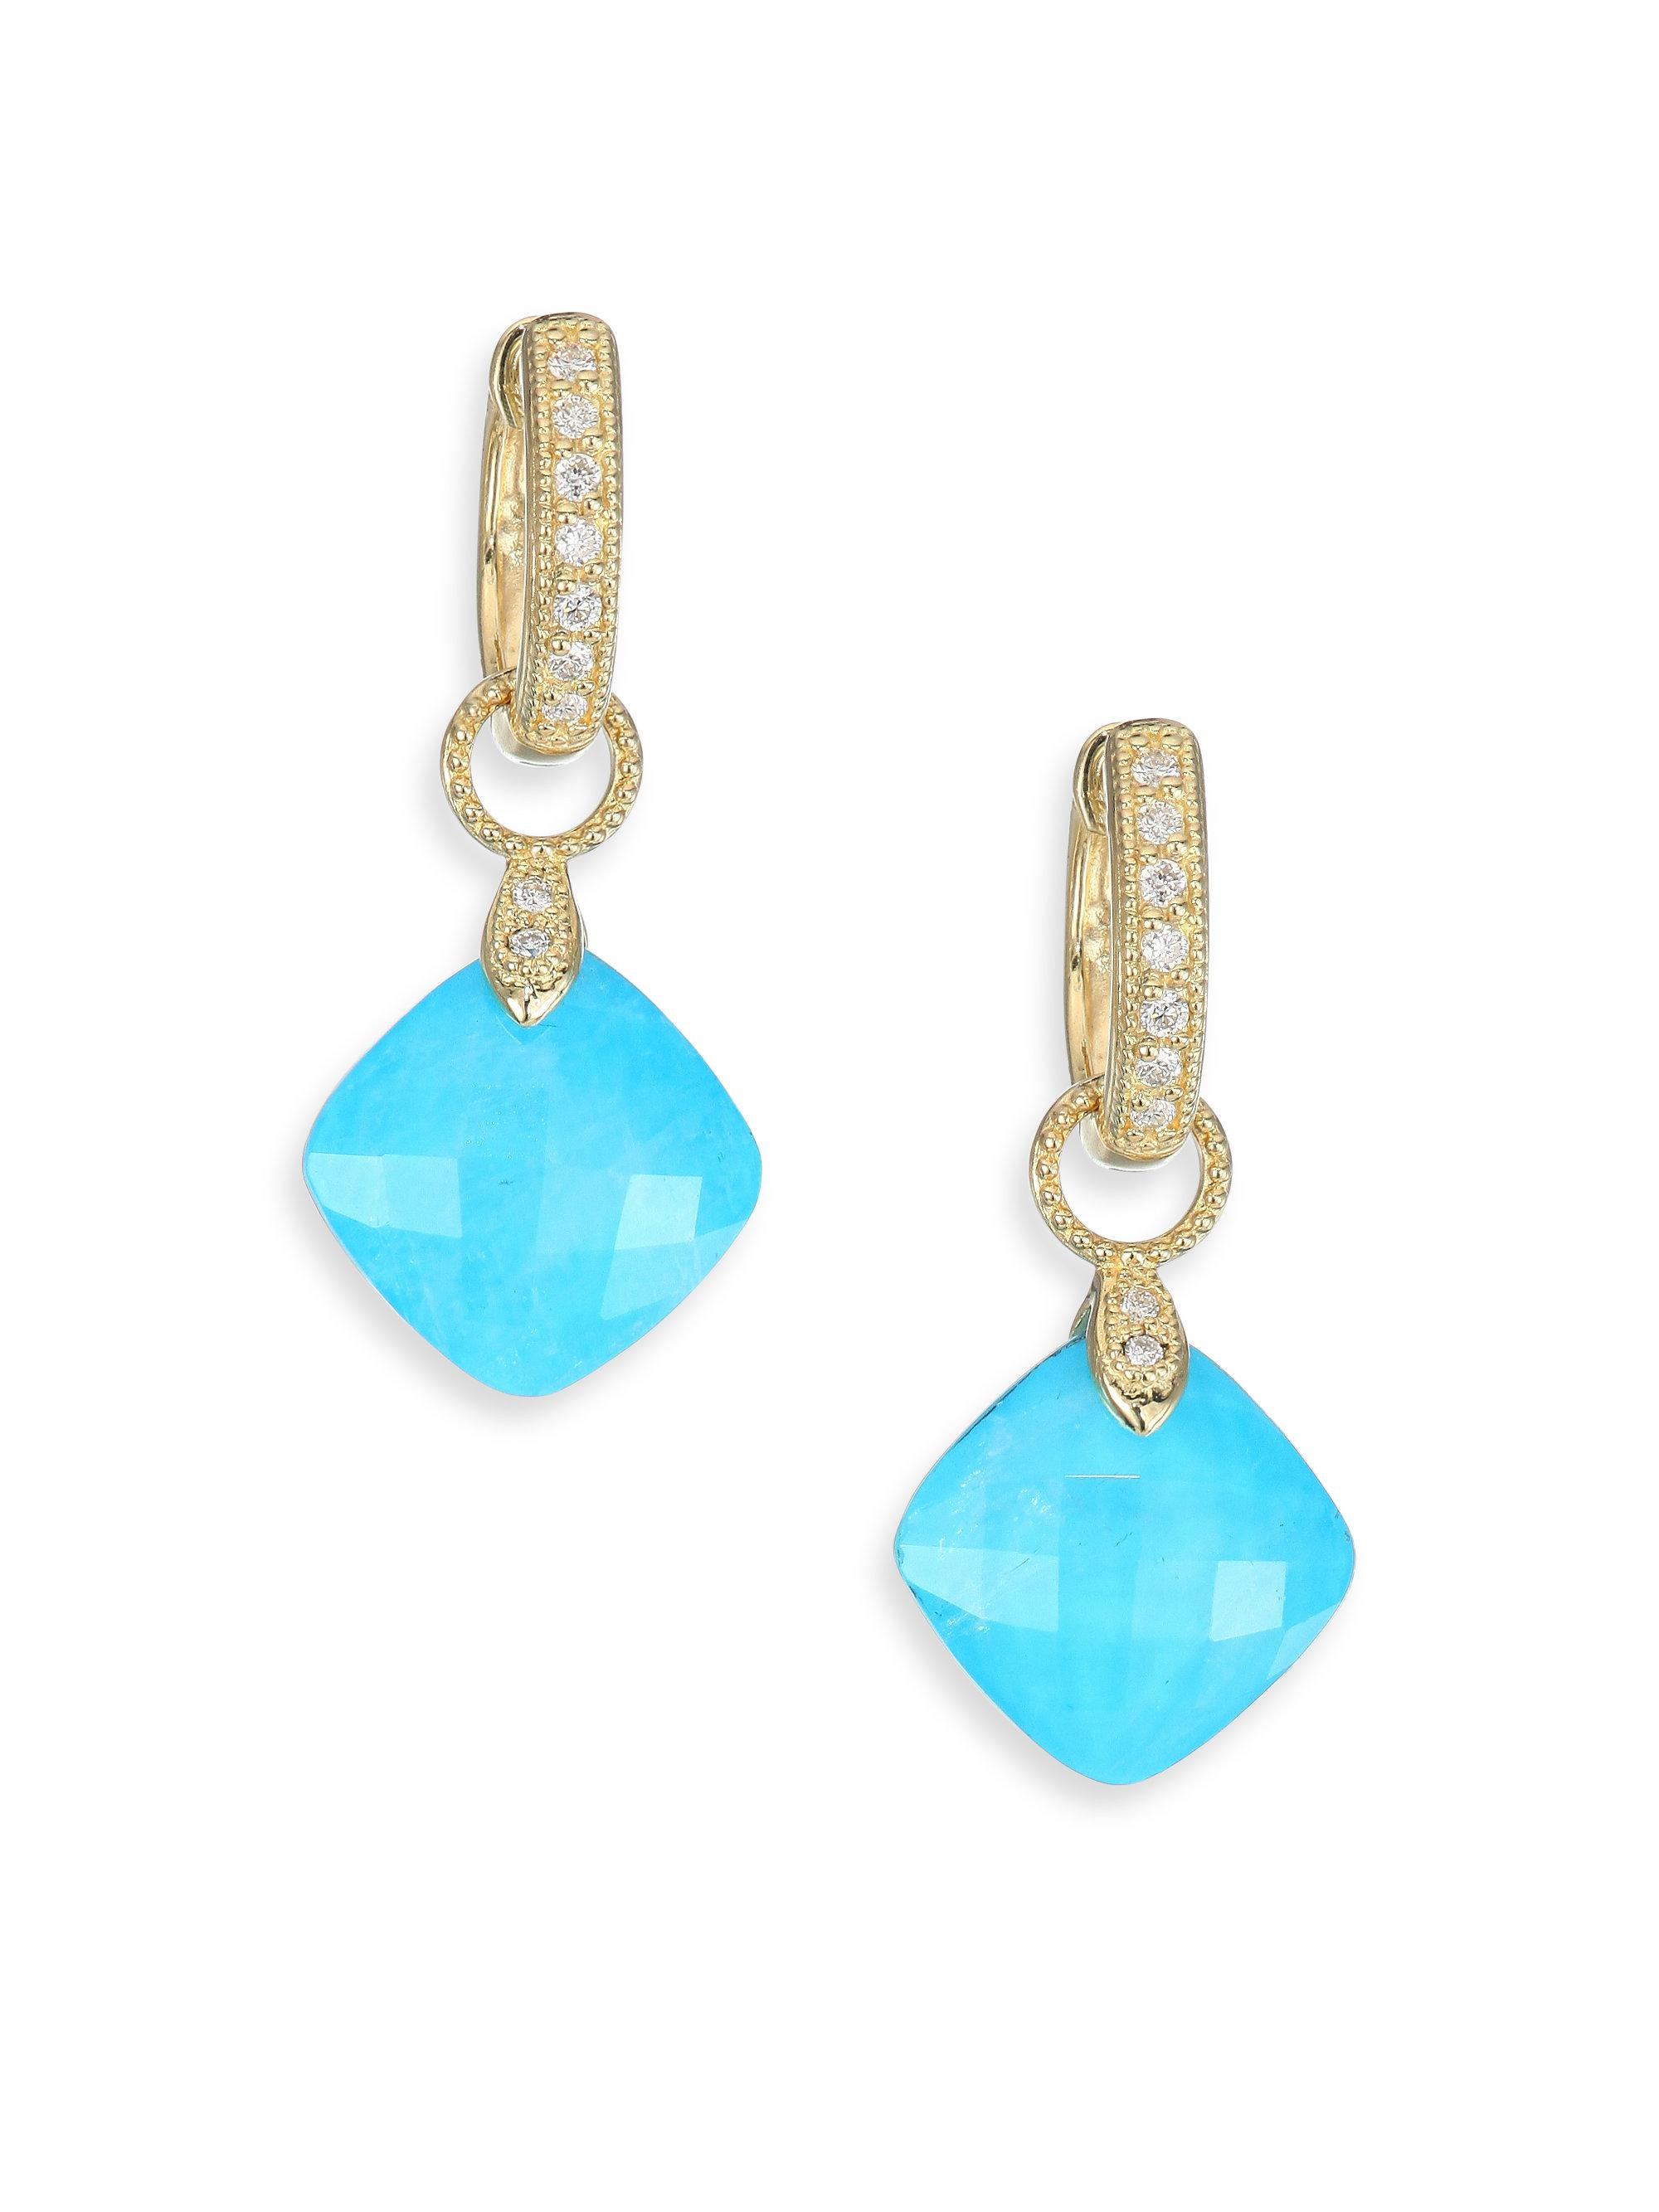 Jude Frances 18k Lisse Cushion Earring Charms, Moonstone